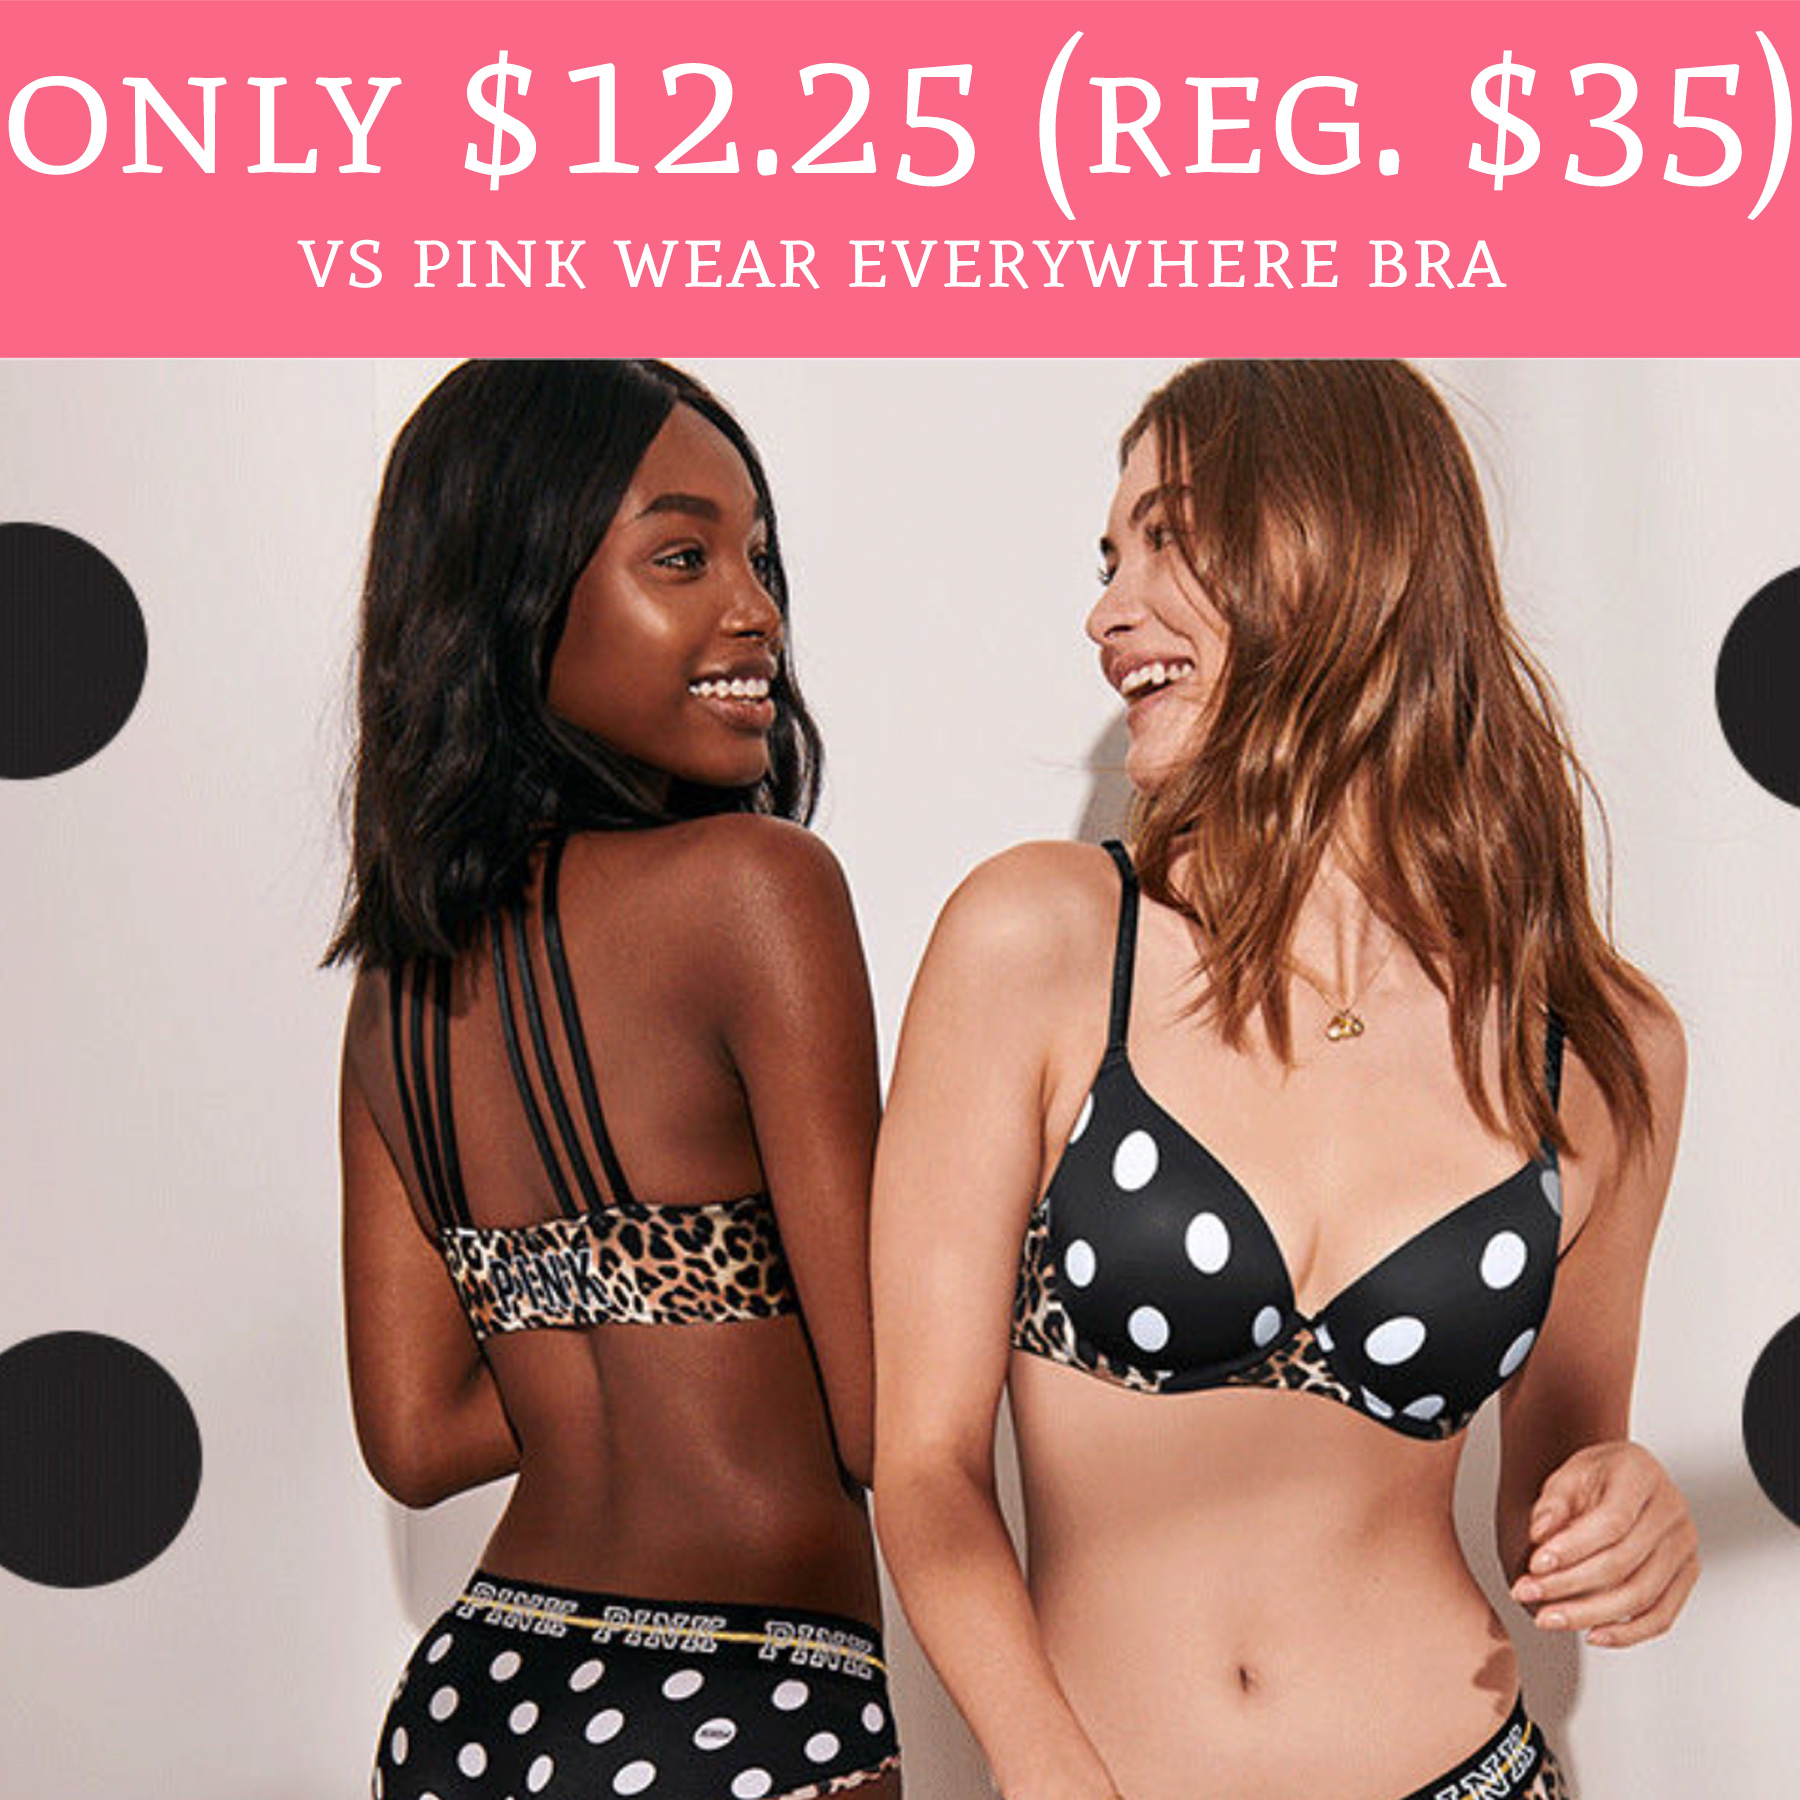 6a98e5b2c80 Stock up on Bras!! 😍. Hurry over to Victoria'sSecret.com to score Victoria's  Secret Wear Everywhere Bras for just ...